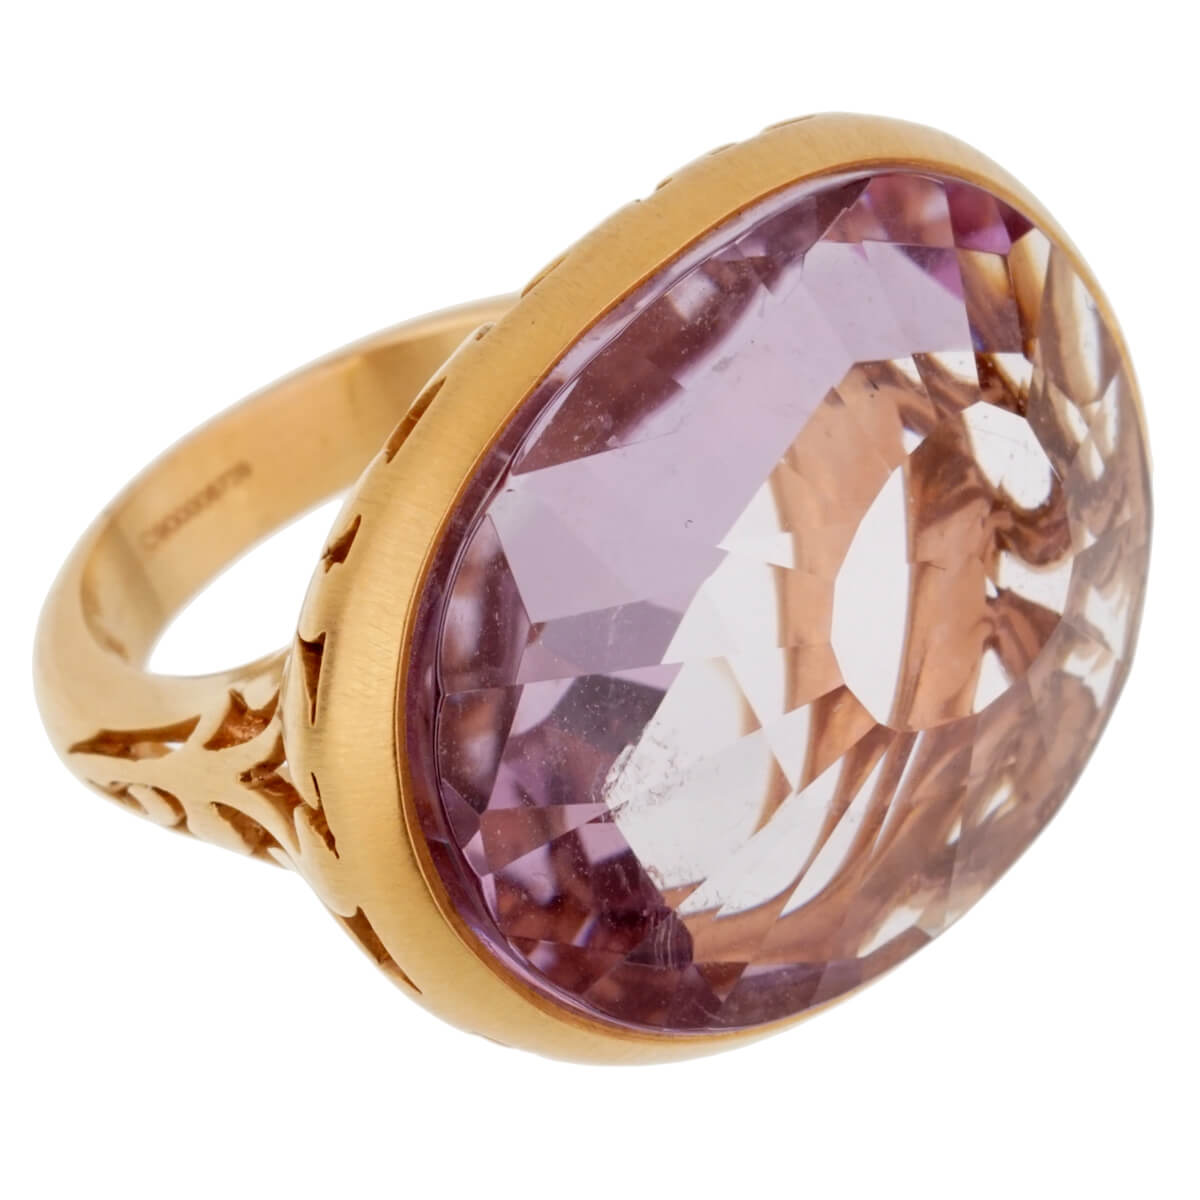 Pomellato 10ct Amethyst Cocktail Rose Gold Ring Sz 5 1/4